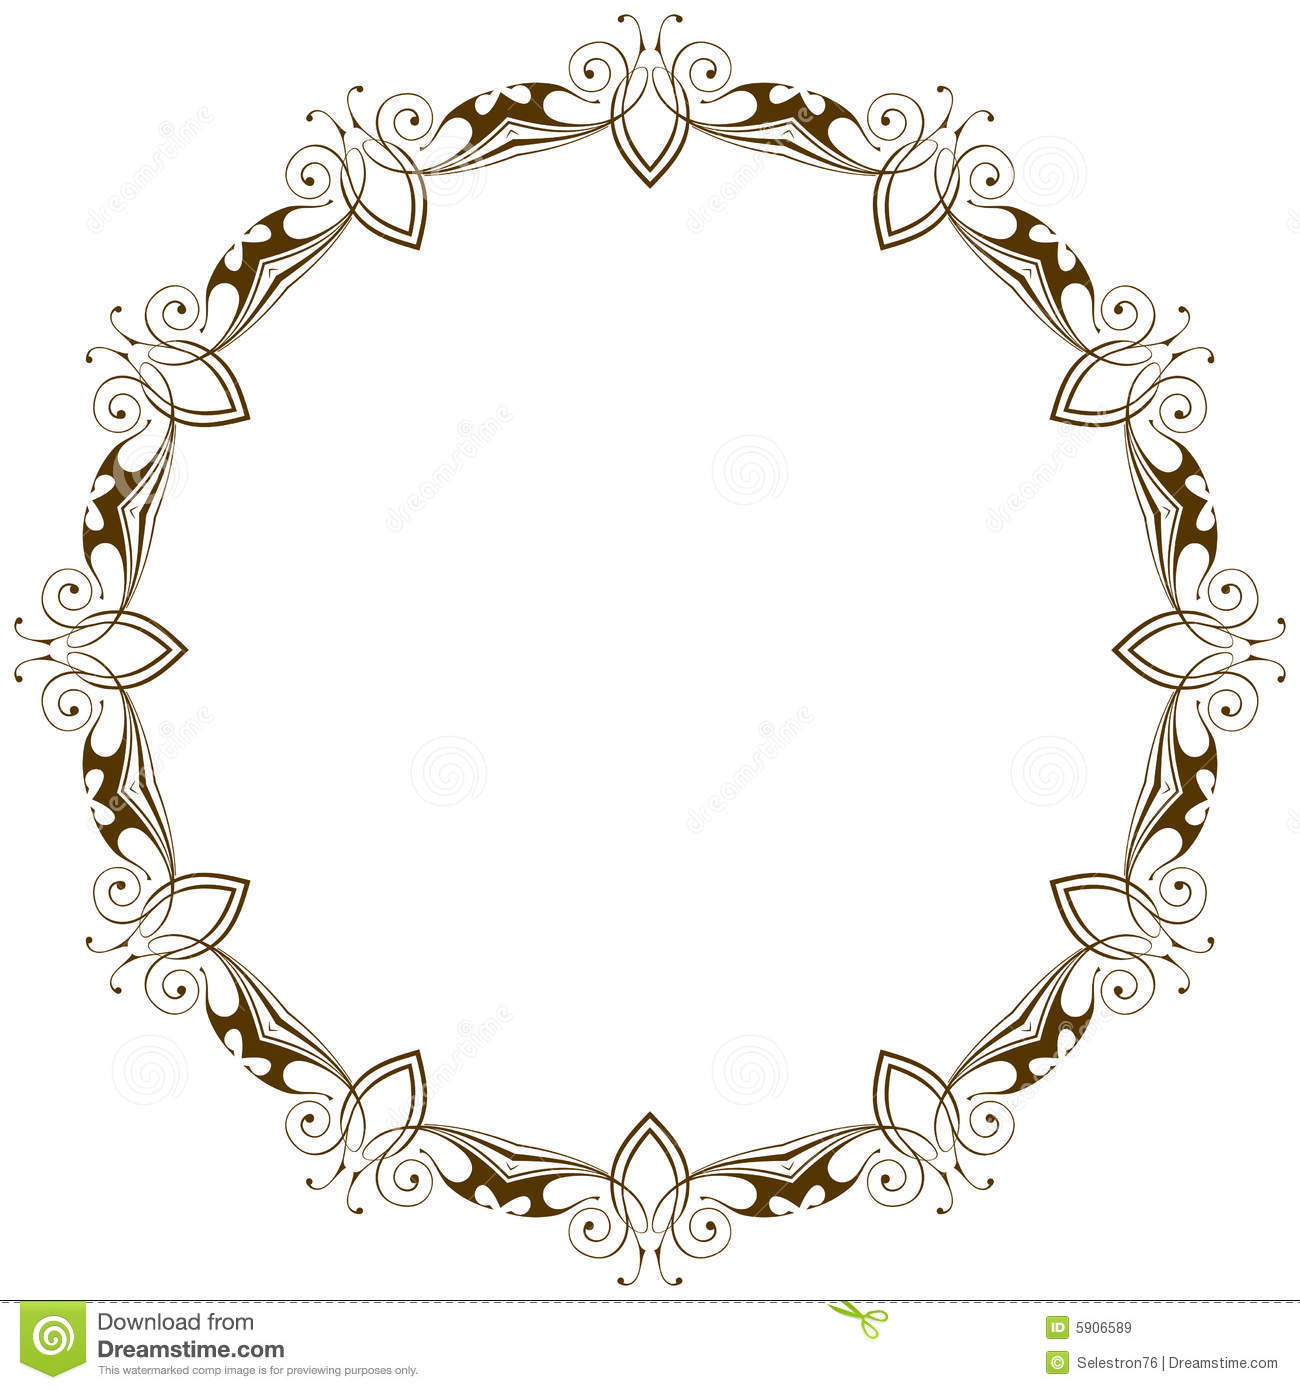 Vector Vintage Floral Frame Royalty Free Stock Images - Image: 5906589